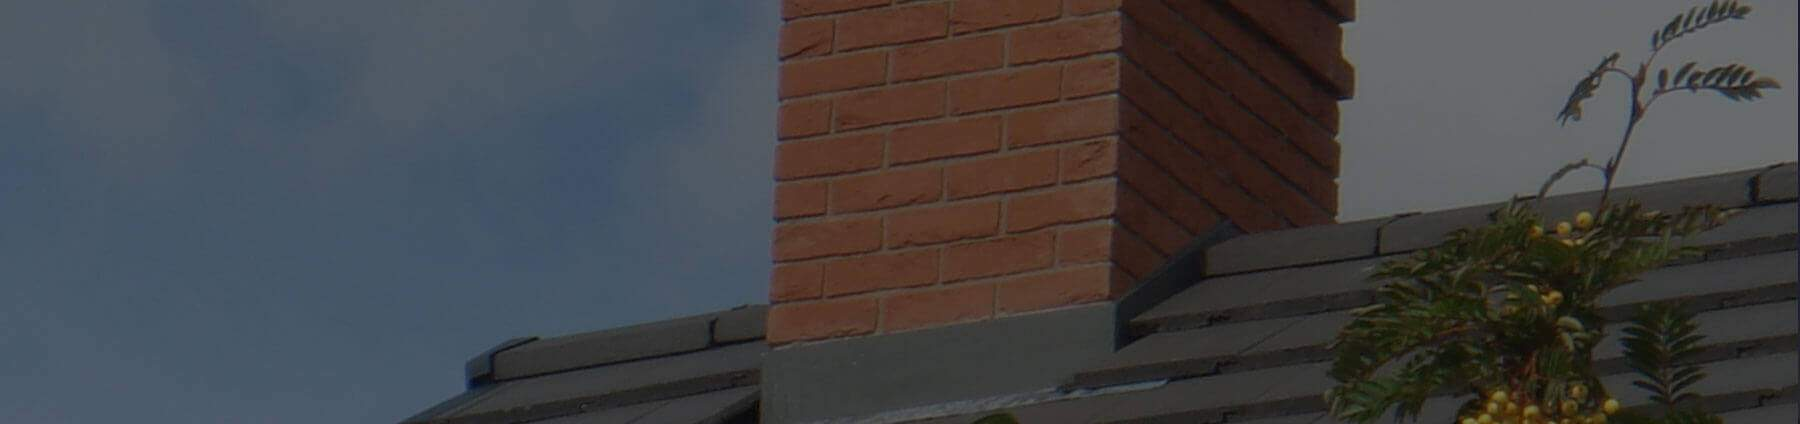 North New Jersey Roofing Chimney And Gutters Roof Repair Nj